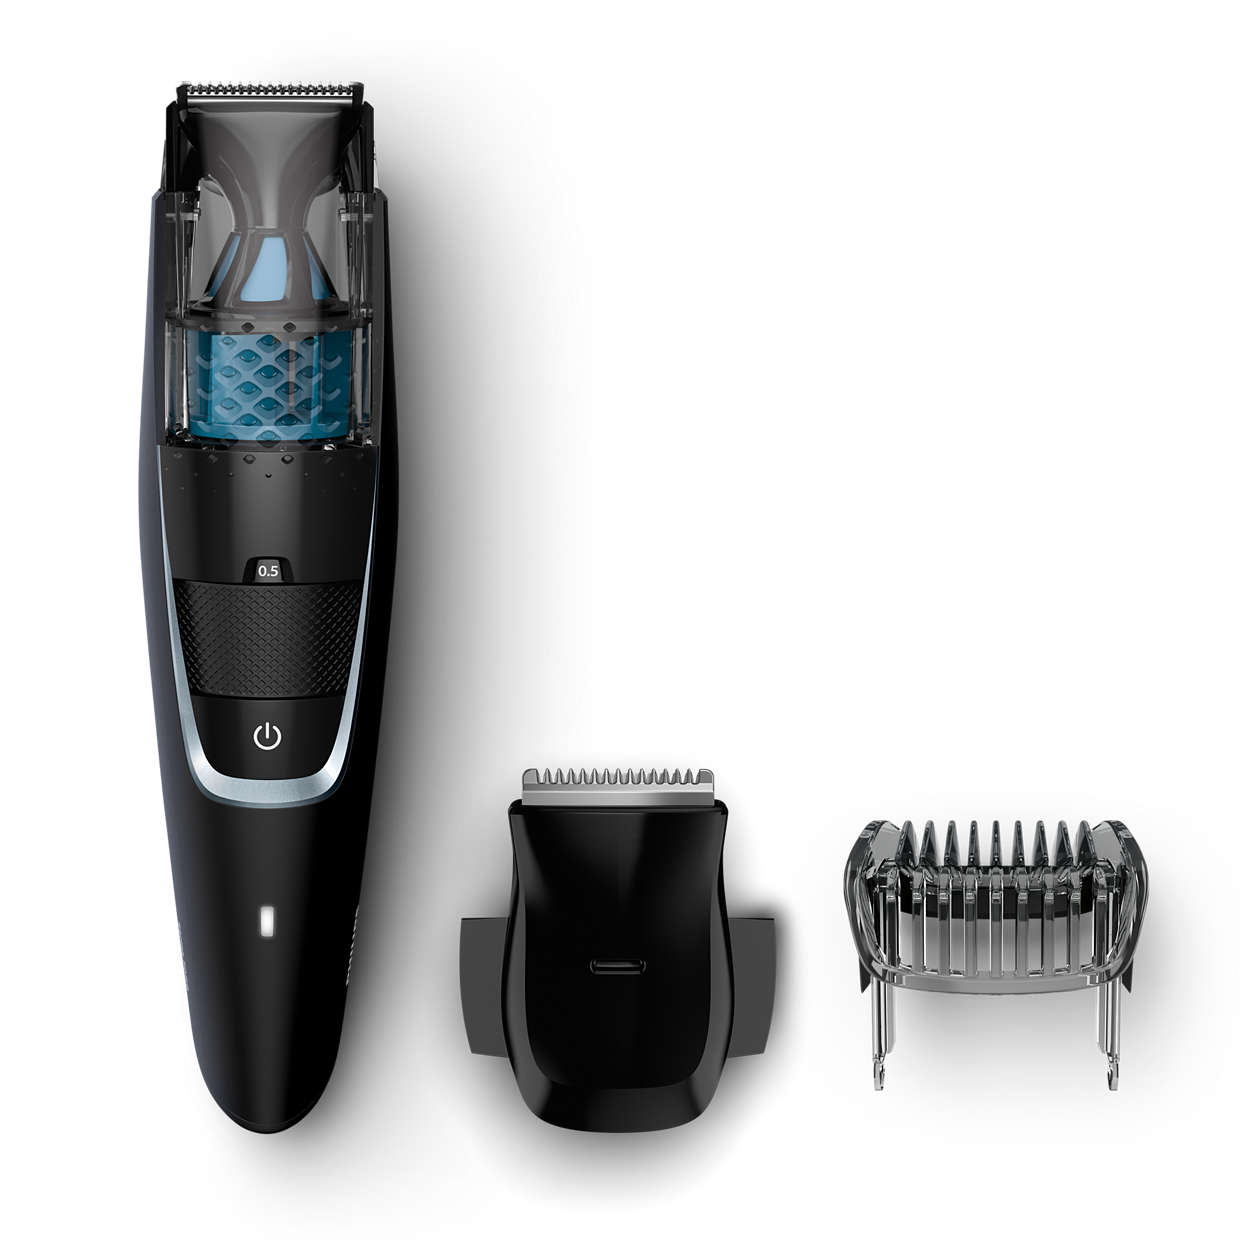 beardtrimmer series 7000 vacuum beard trimmer bt7201 15 philips. Black Bedroom Furniture Sets. Home Design Ideas